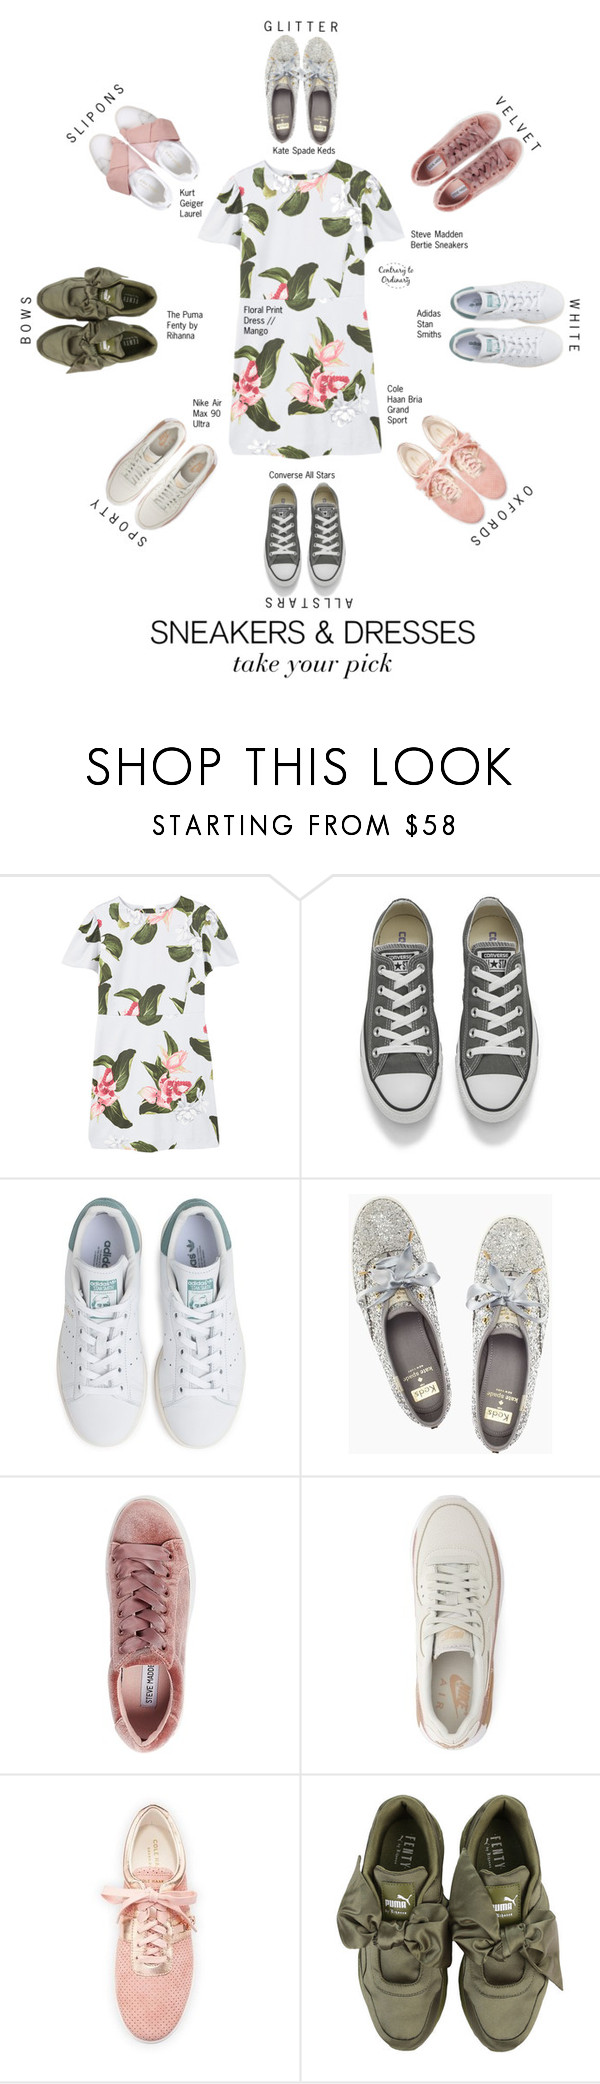 """""""Untitled #1659"""" by contrary-to-ordinary ❤ liked on Polyvore featuring MANGO, Converse, adidas, Kate Spade, Steve Madden, NIKE, Cole Haan, Puma, Kurt Geiger and sneakers"""